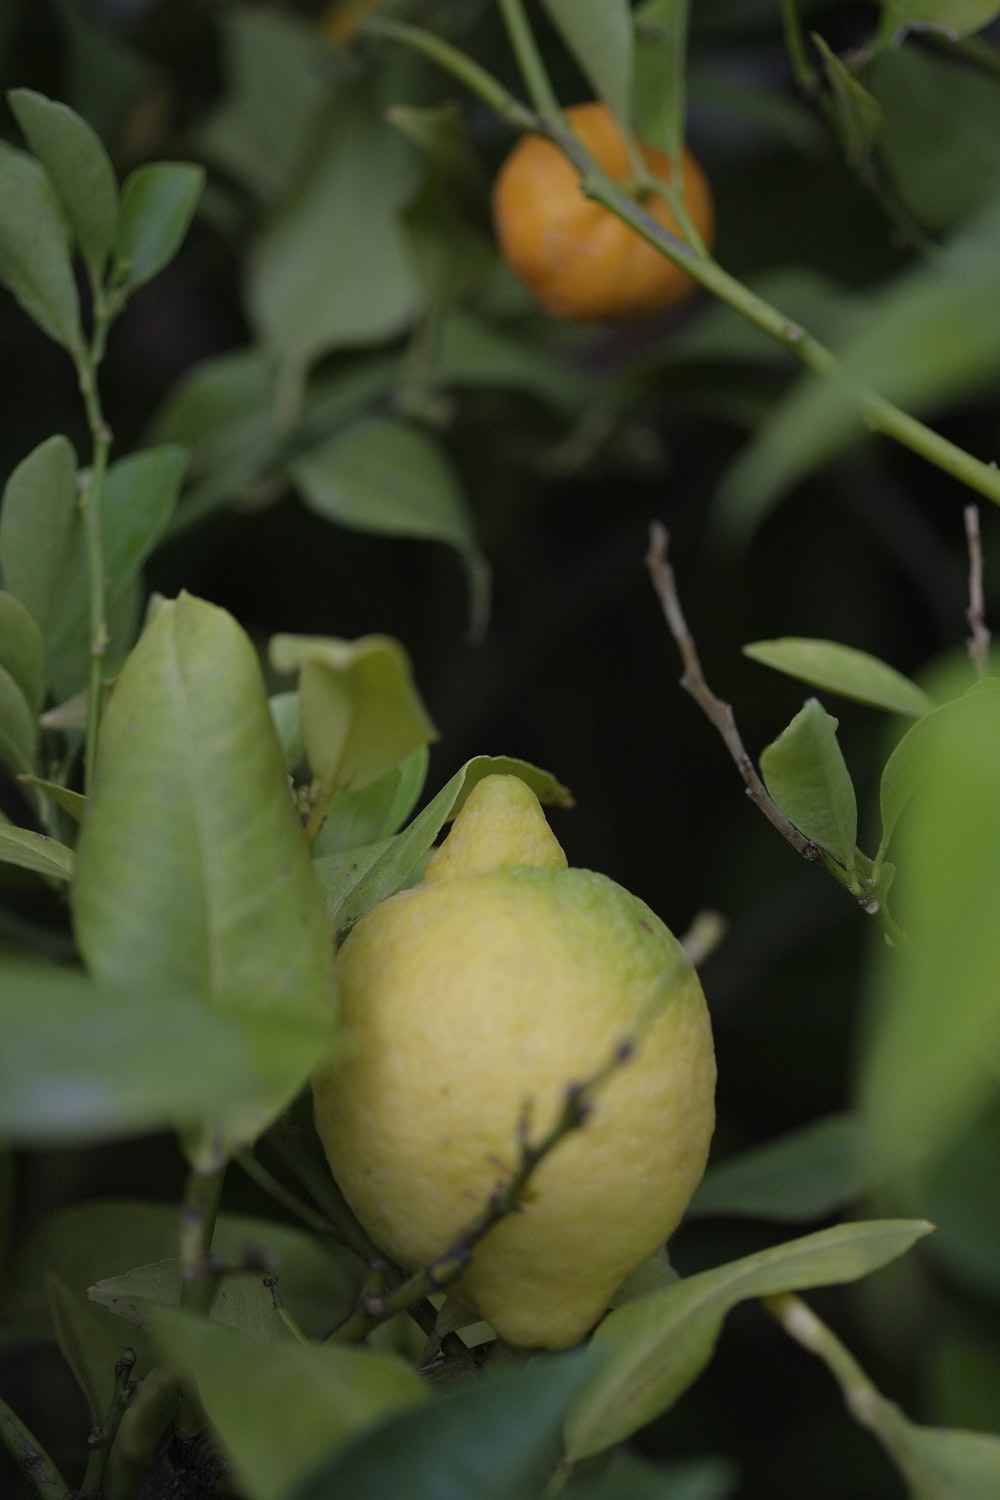 close-up photography of lemon